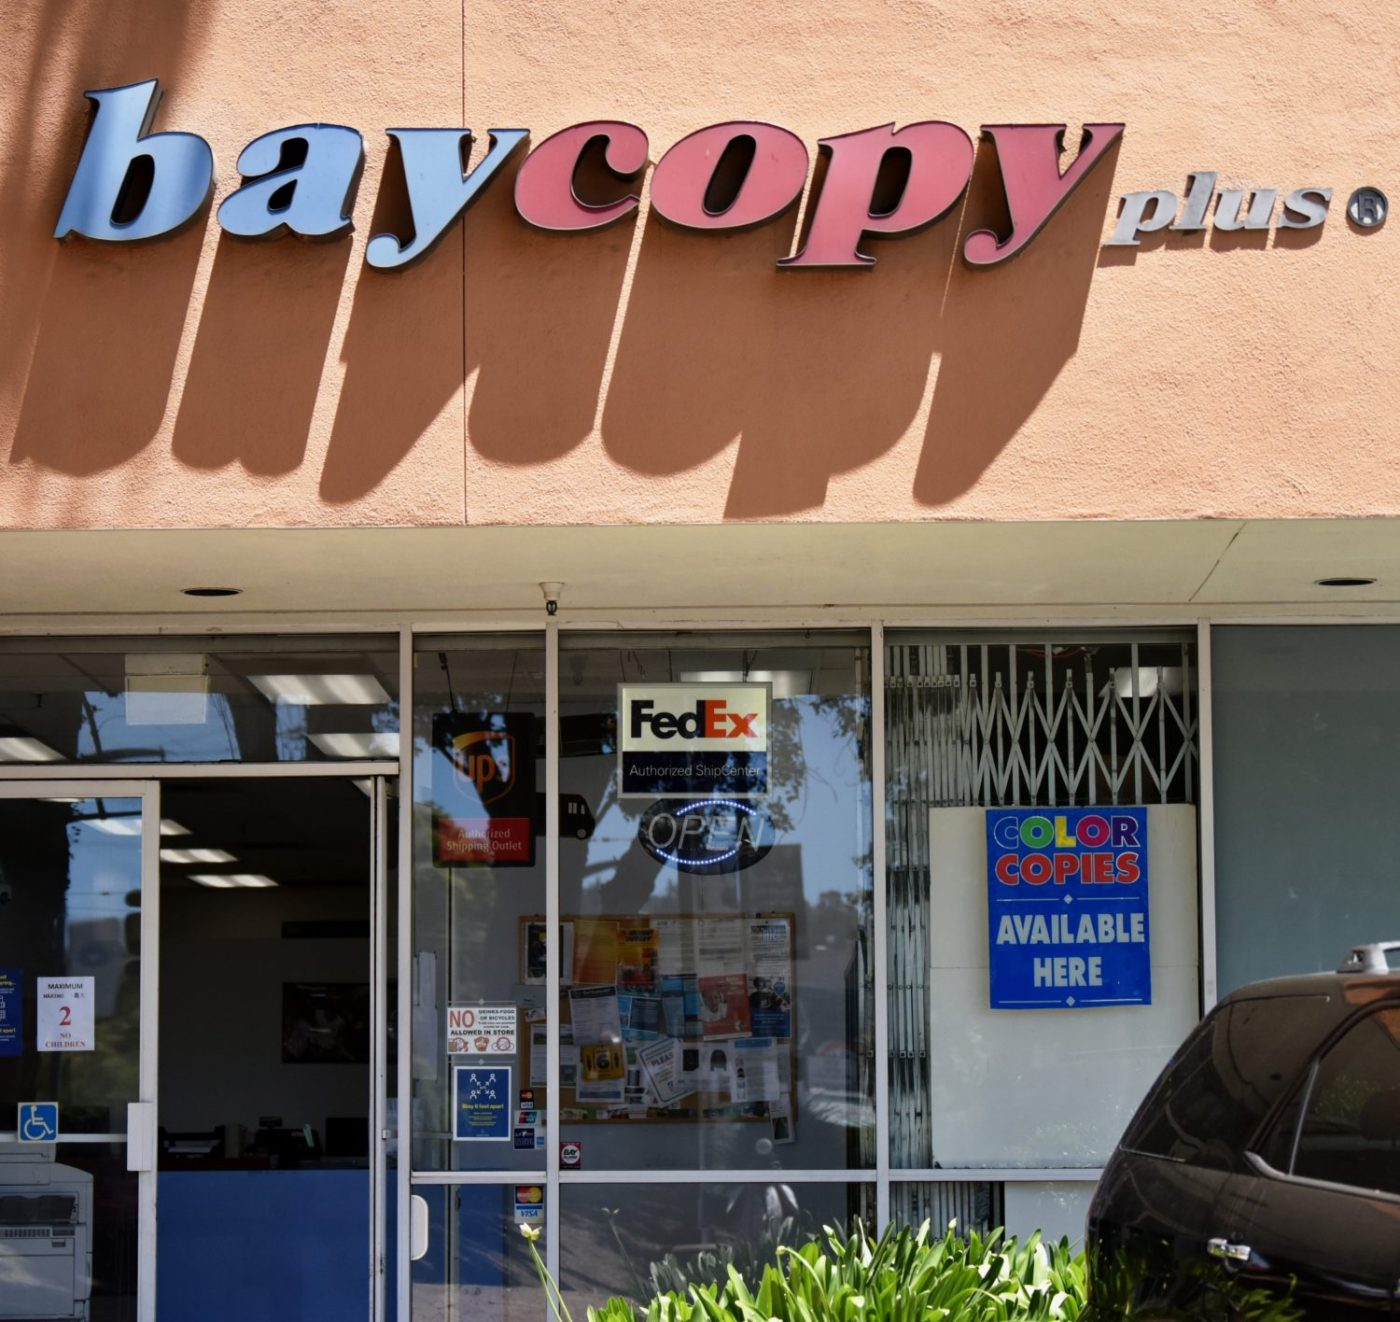 Bay-Copy-Plus-in-Bayview-Plaza-0520-by-Johnnie-Burrell-1400x1322, Why bother? A question by Black small businesses during the COVID-19 crisis, Local News & Views